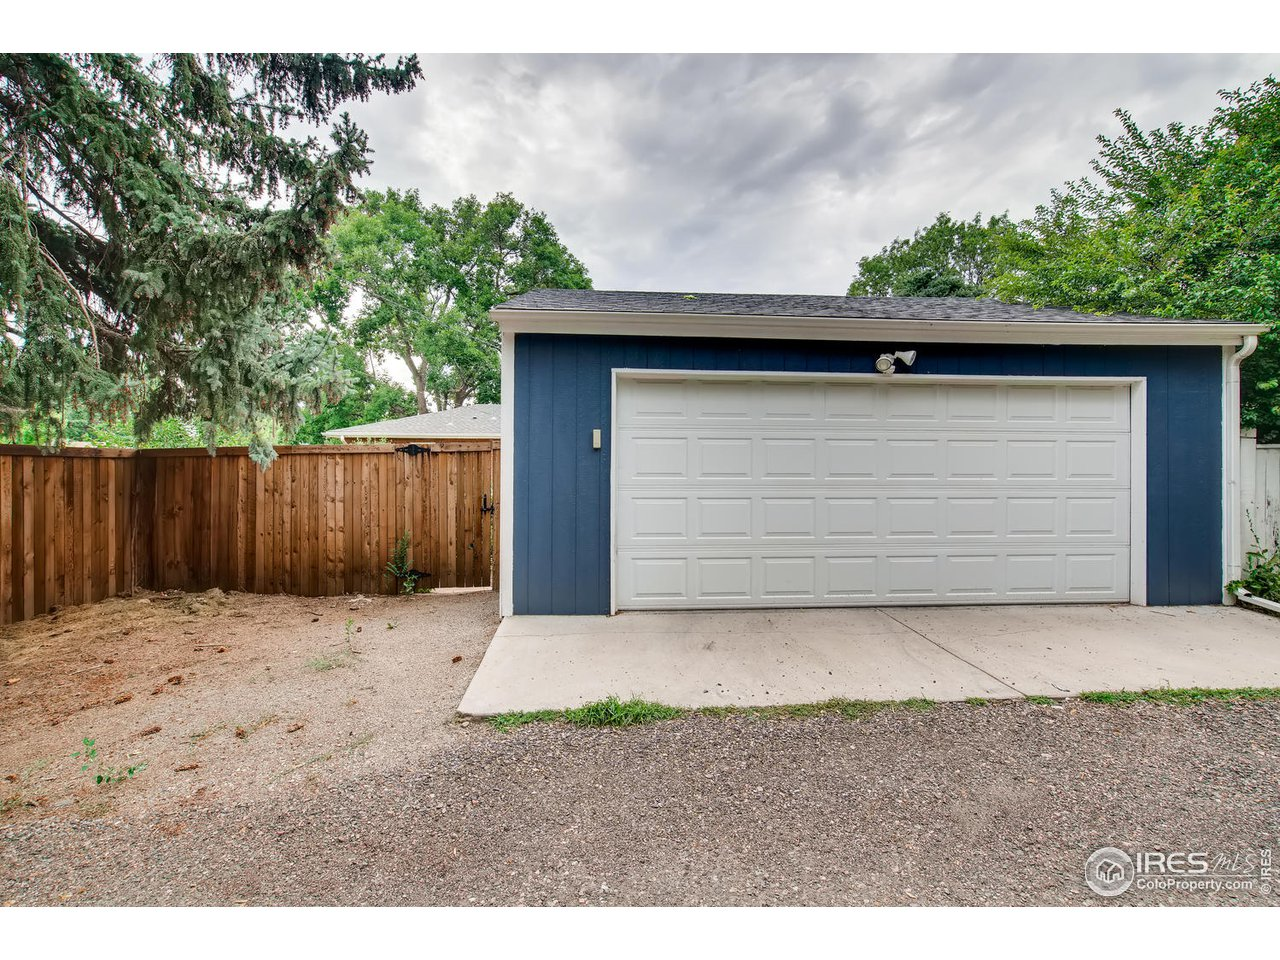 Oversized 2 Car Garage with Alley Access